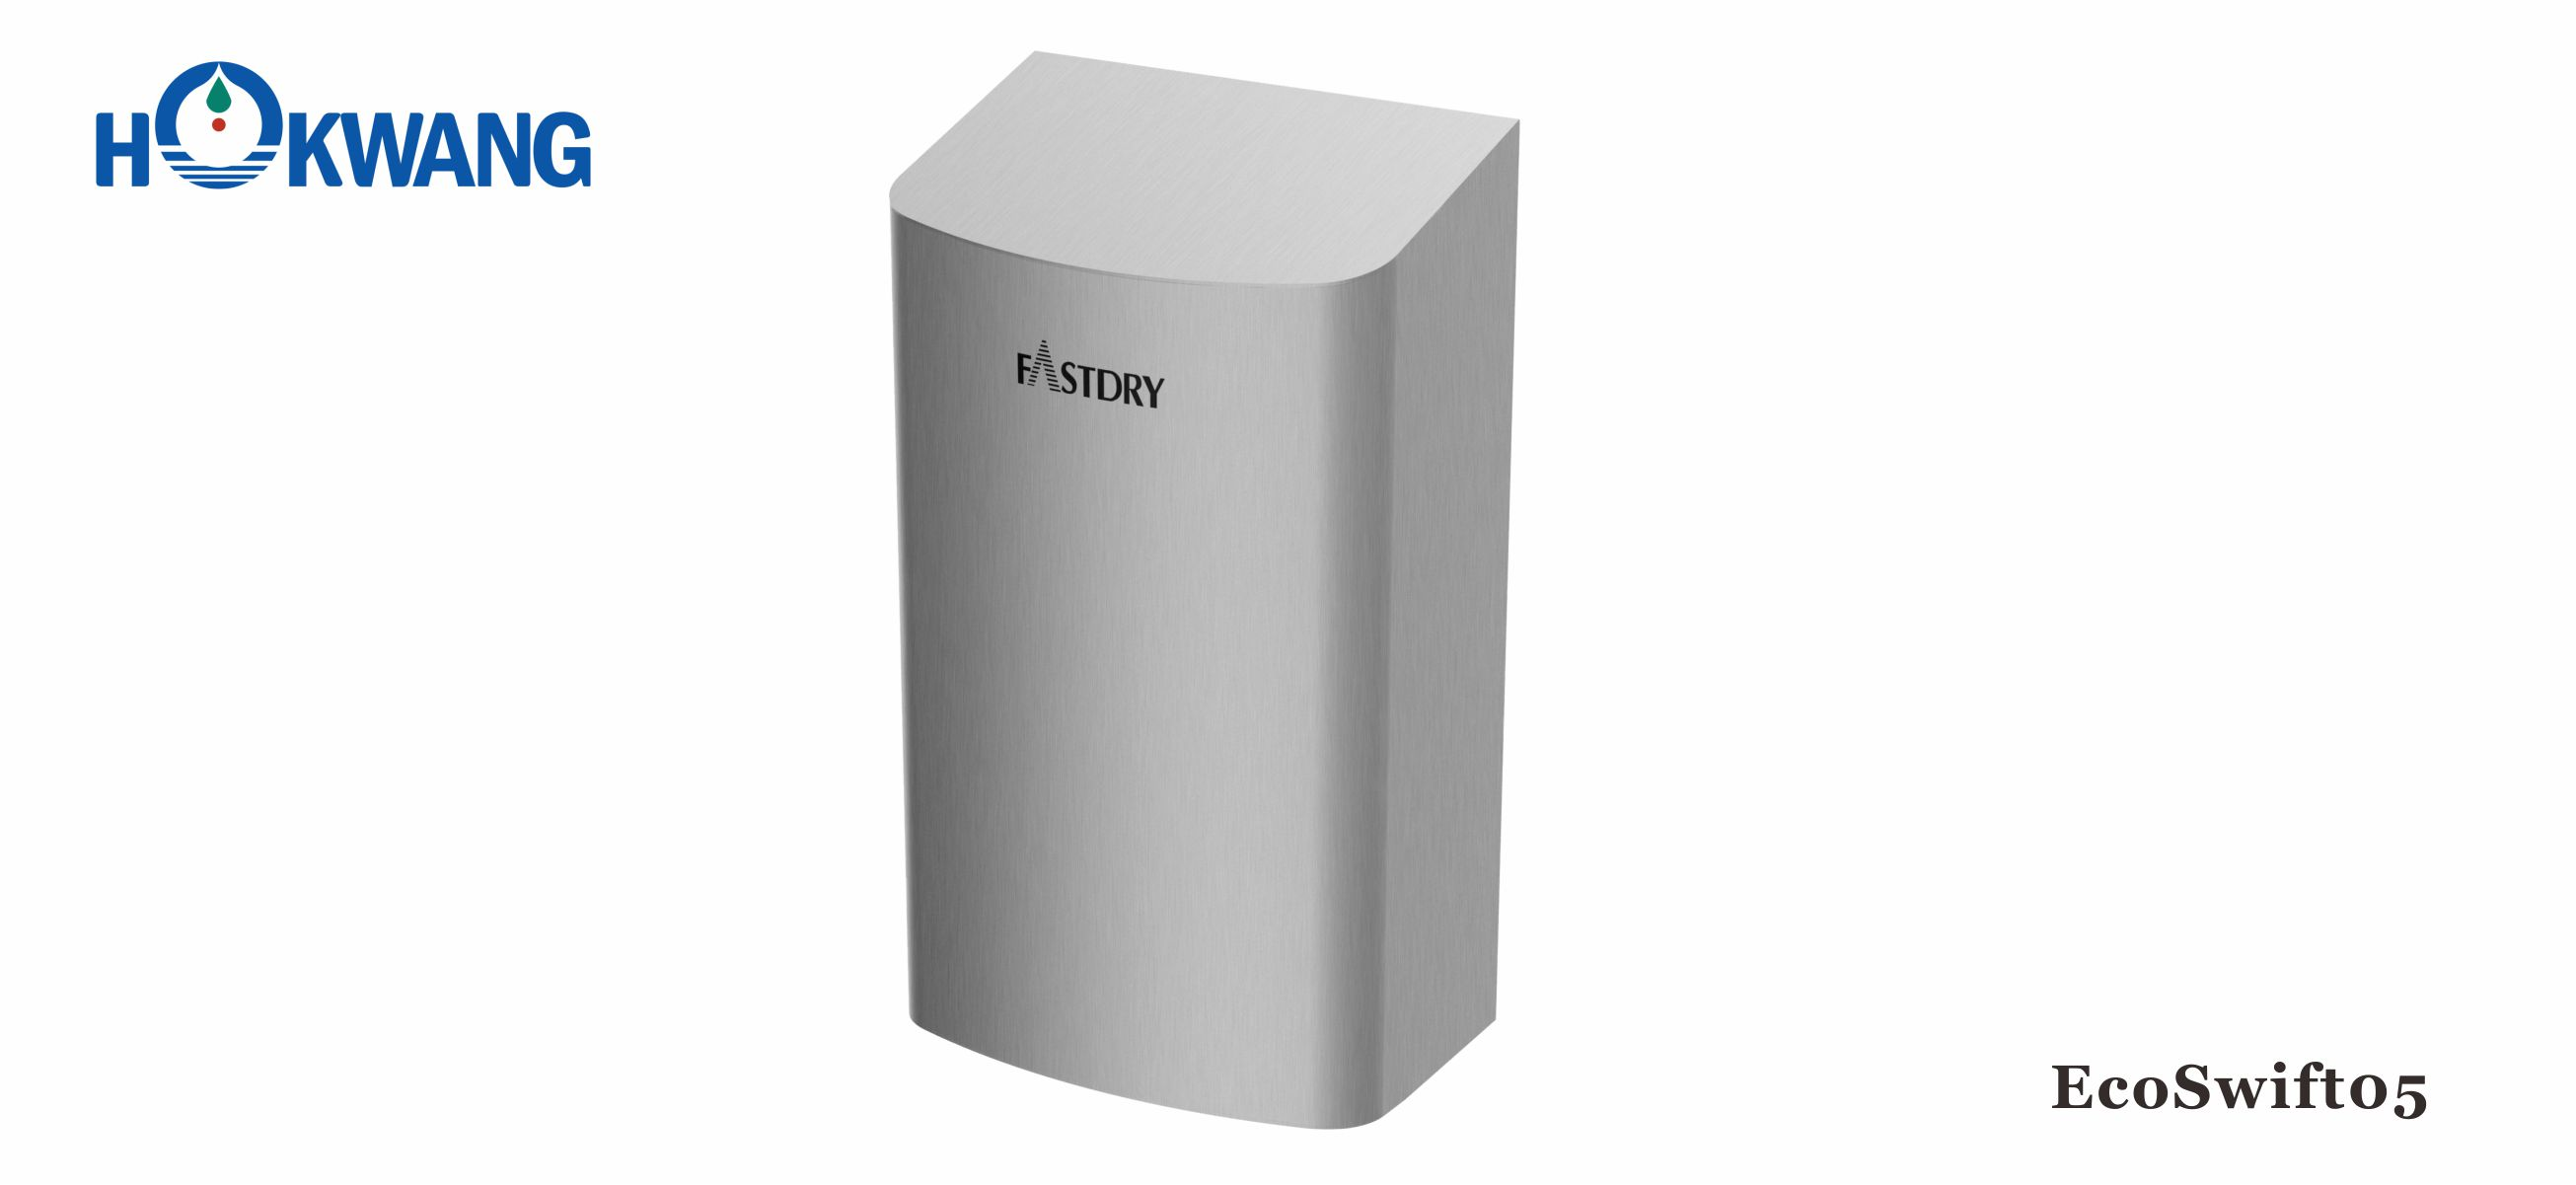 EcoSwift05 G-Mark Certified ADA compliant 1000W Small Stainless Steel Hand Dryer